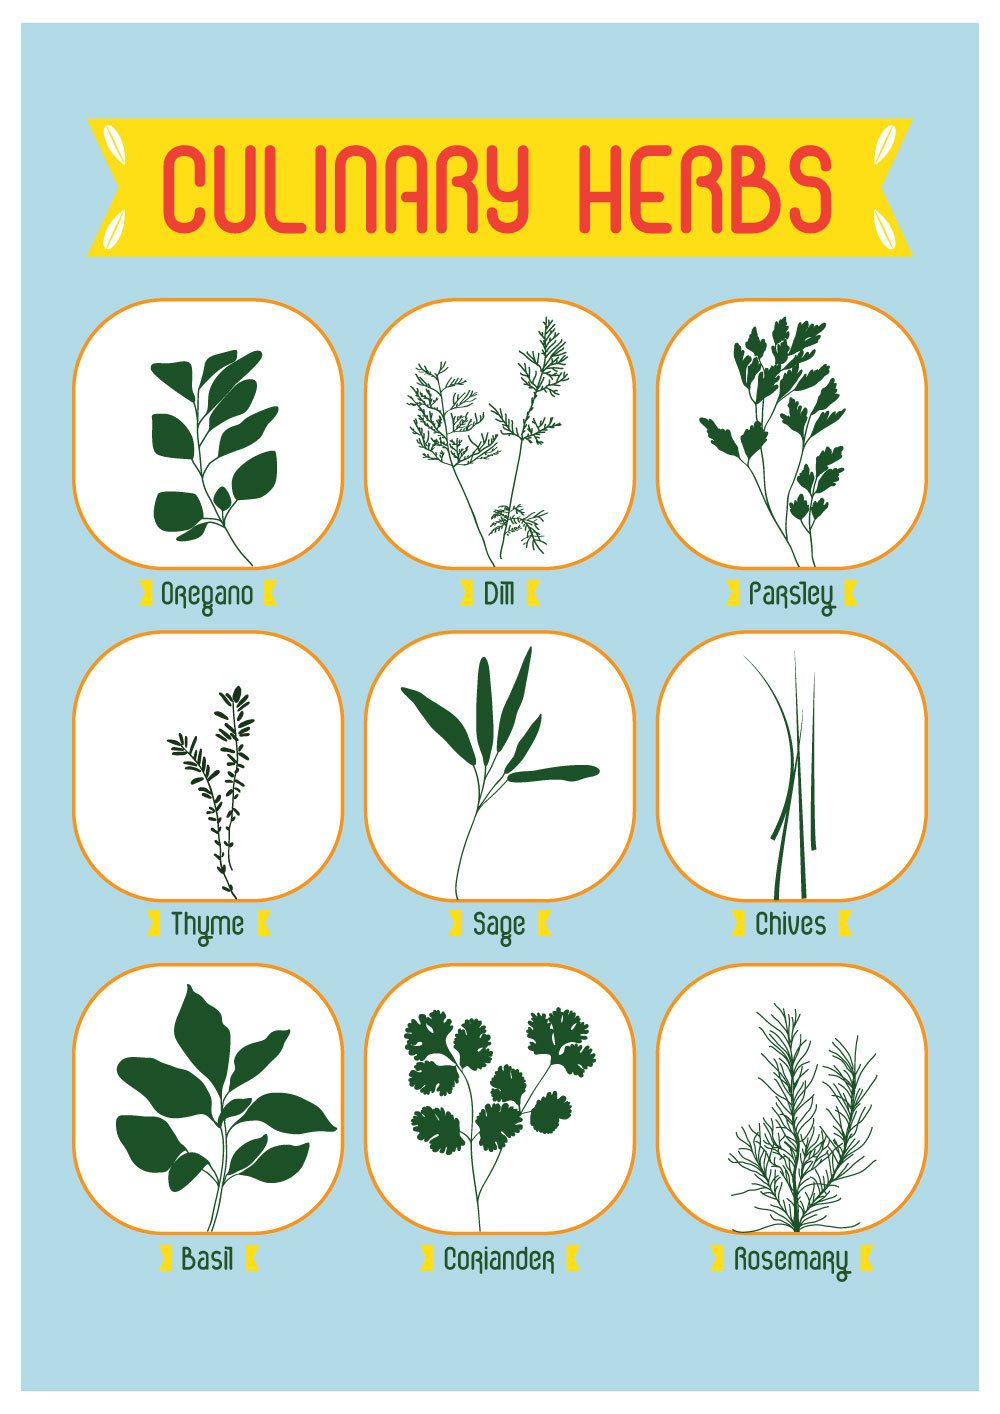 Culinary Herbs Kitchen Poster Art Print by PeanutoakPrint on Etsy ...